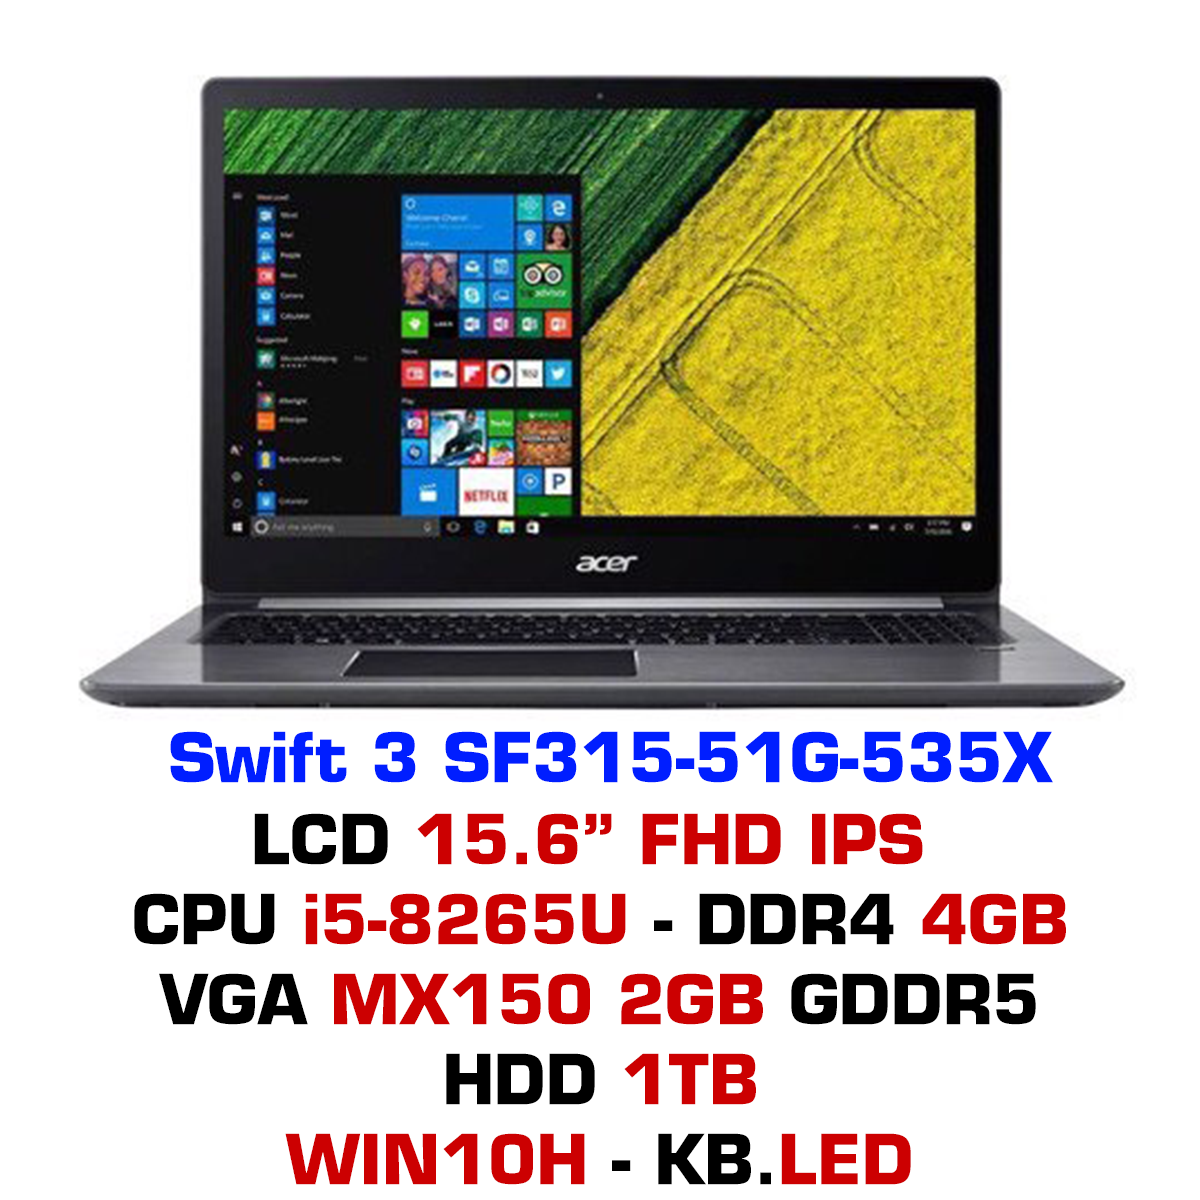 Laptop Acer Swift 3 SF315-51G-535X - Xám